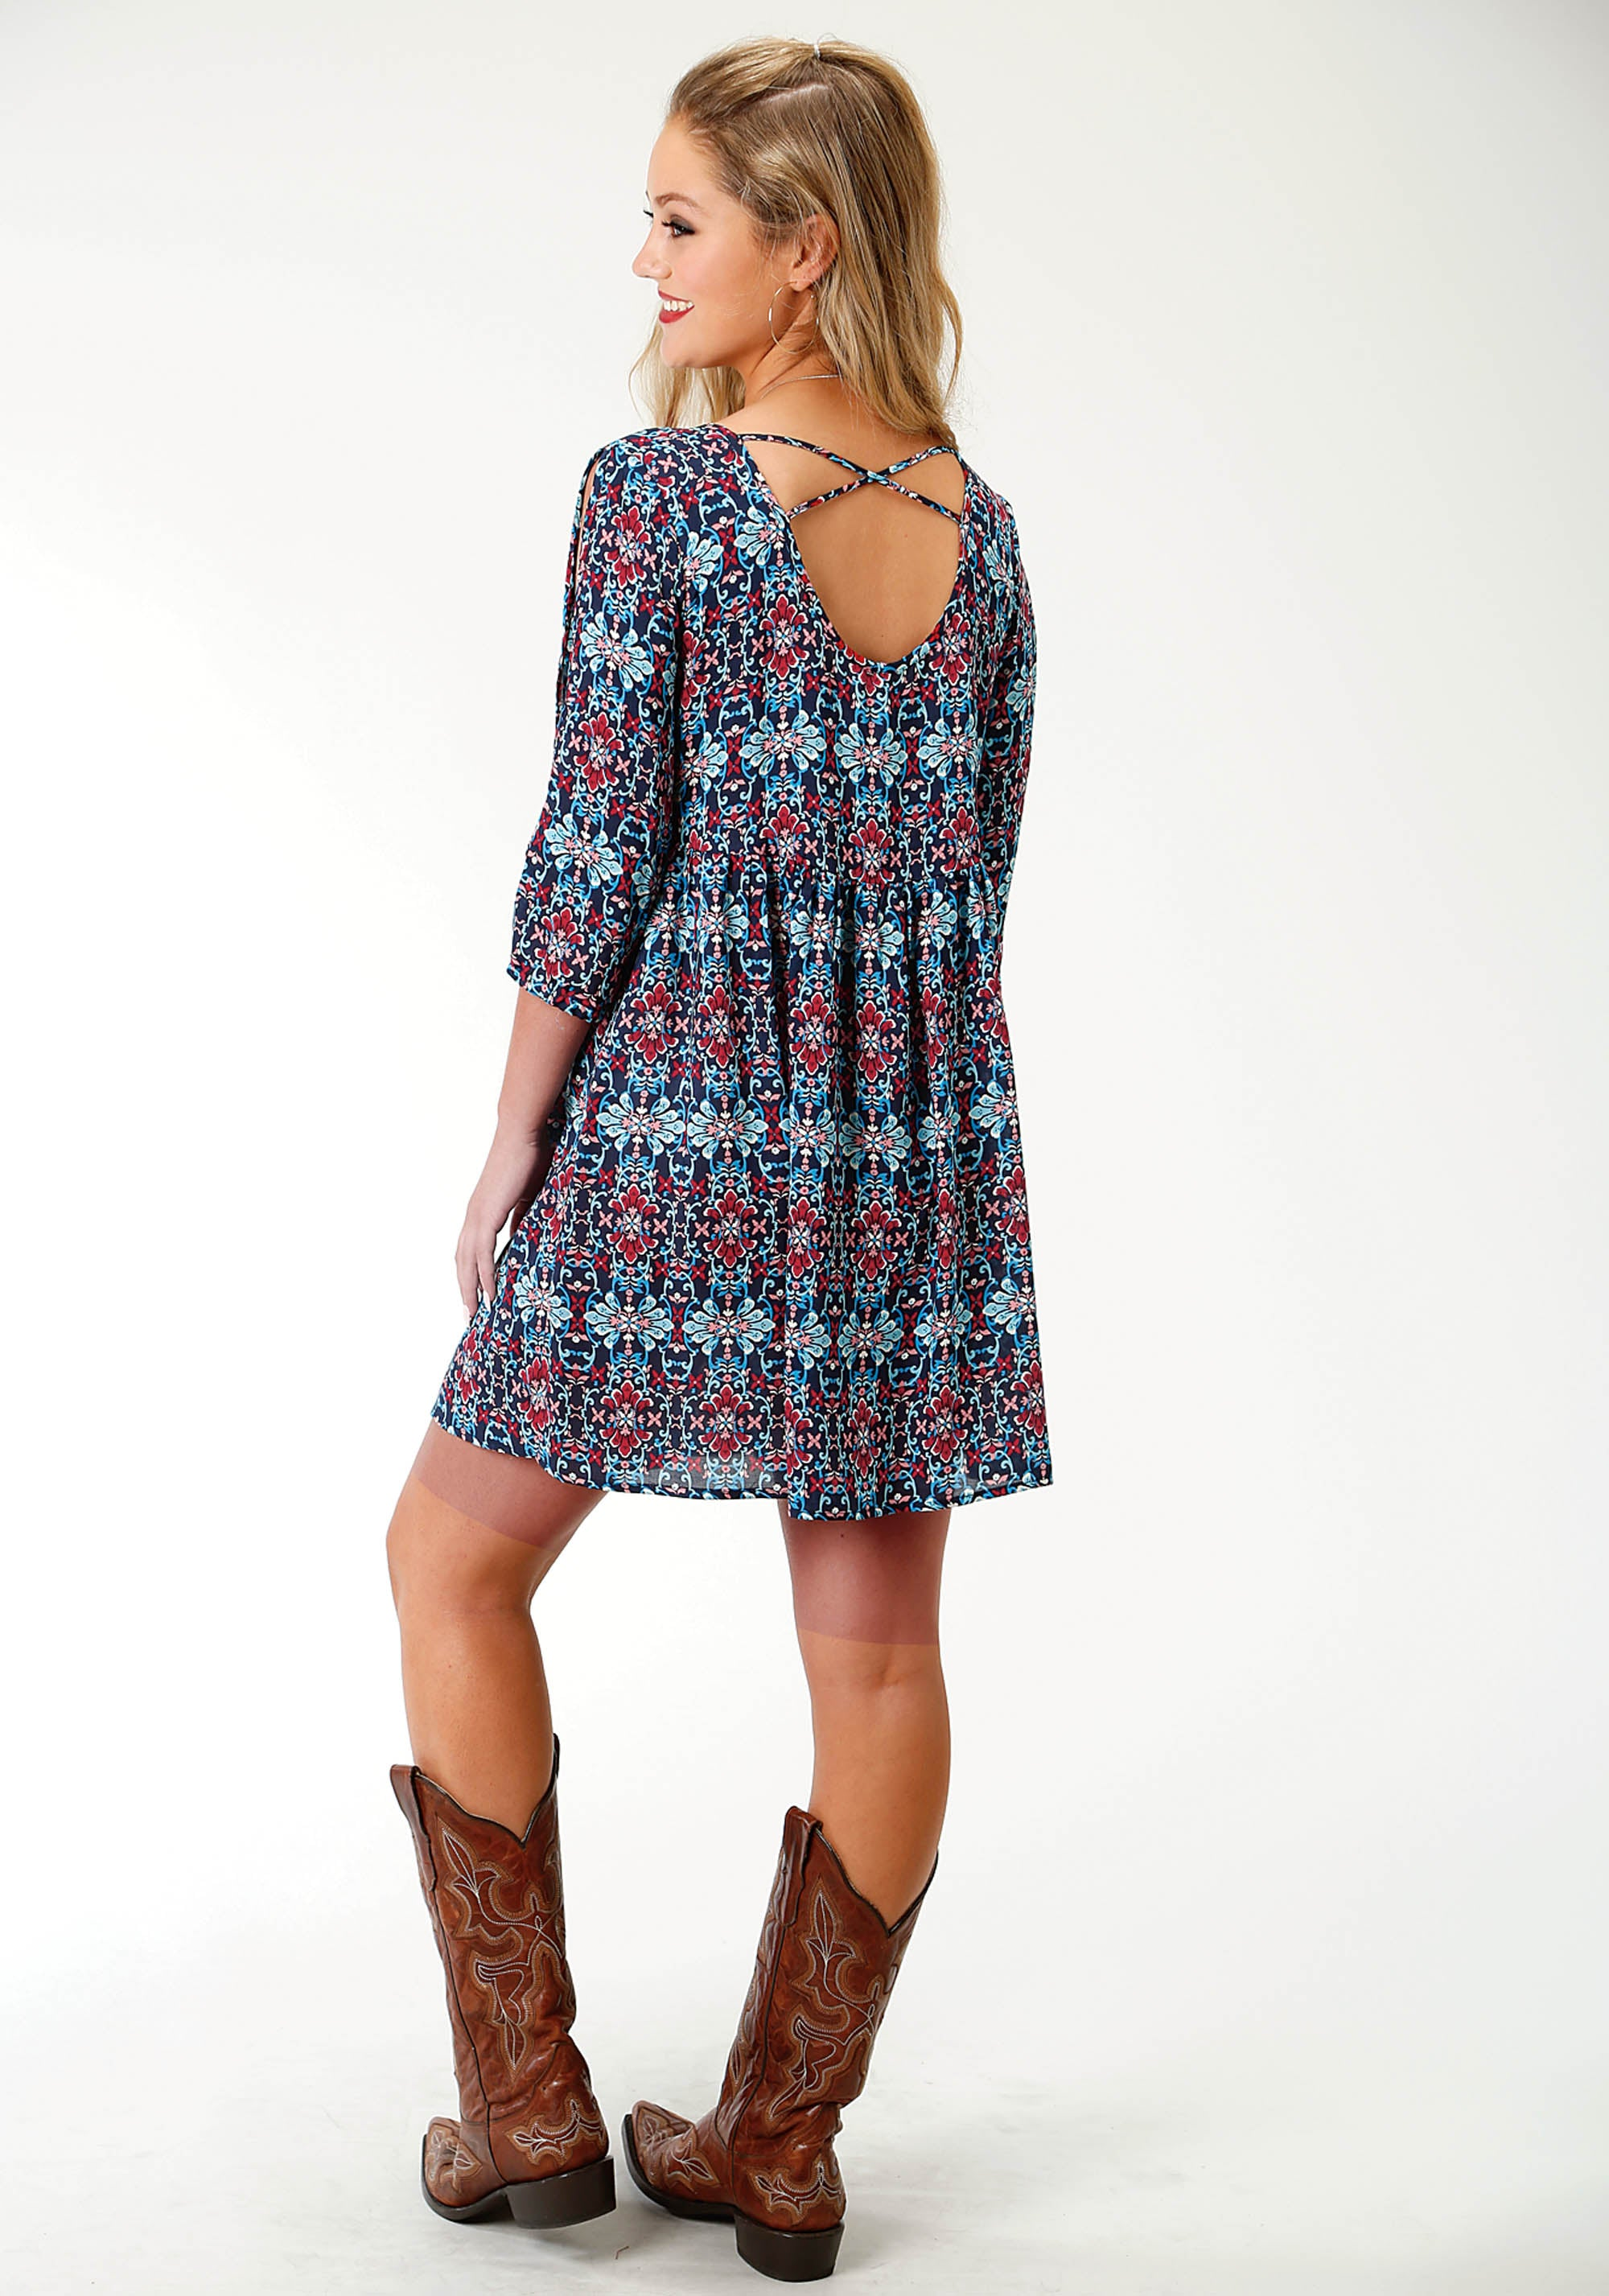 ROPER WOMENS BLUE 2754 SUNSET TAPESTRY DRESS FIVE STAR COLLECTION- SPRING III LONG SLEEVE DRESS